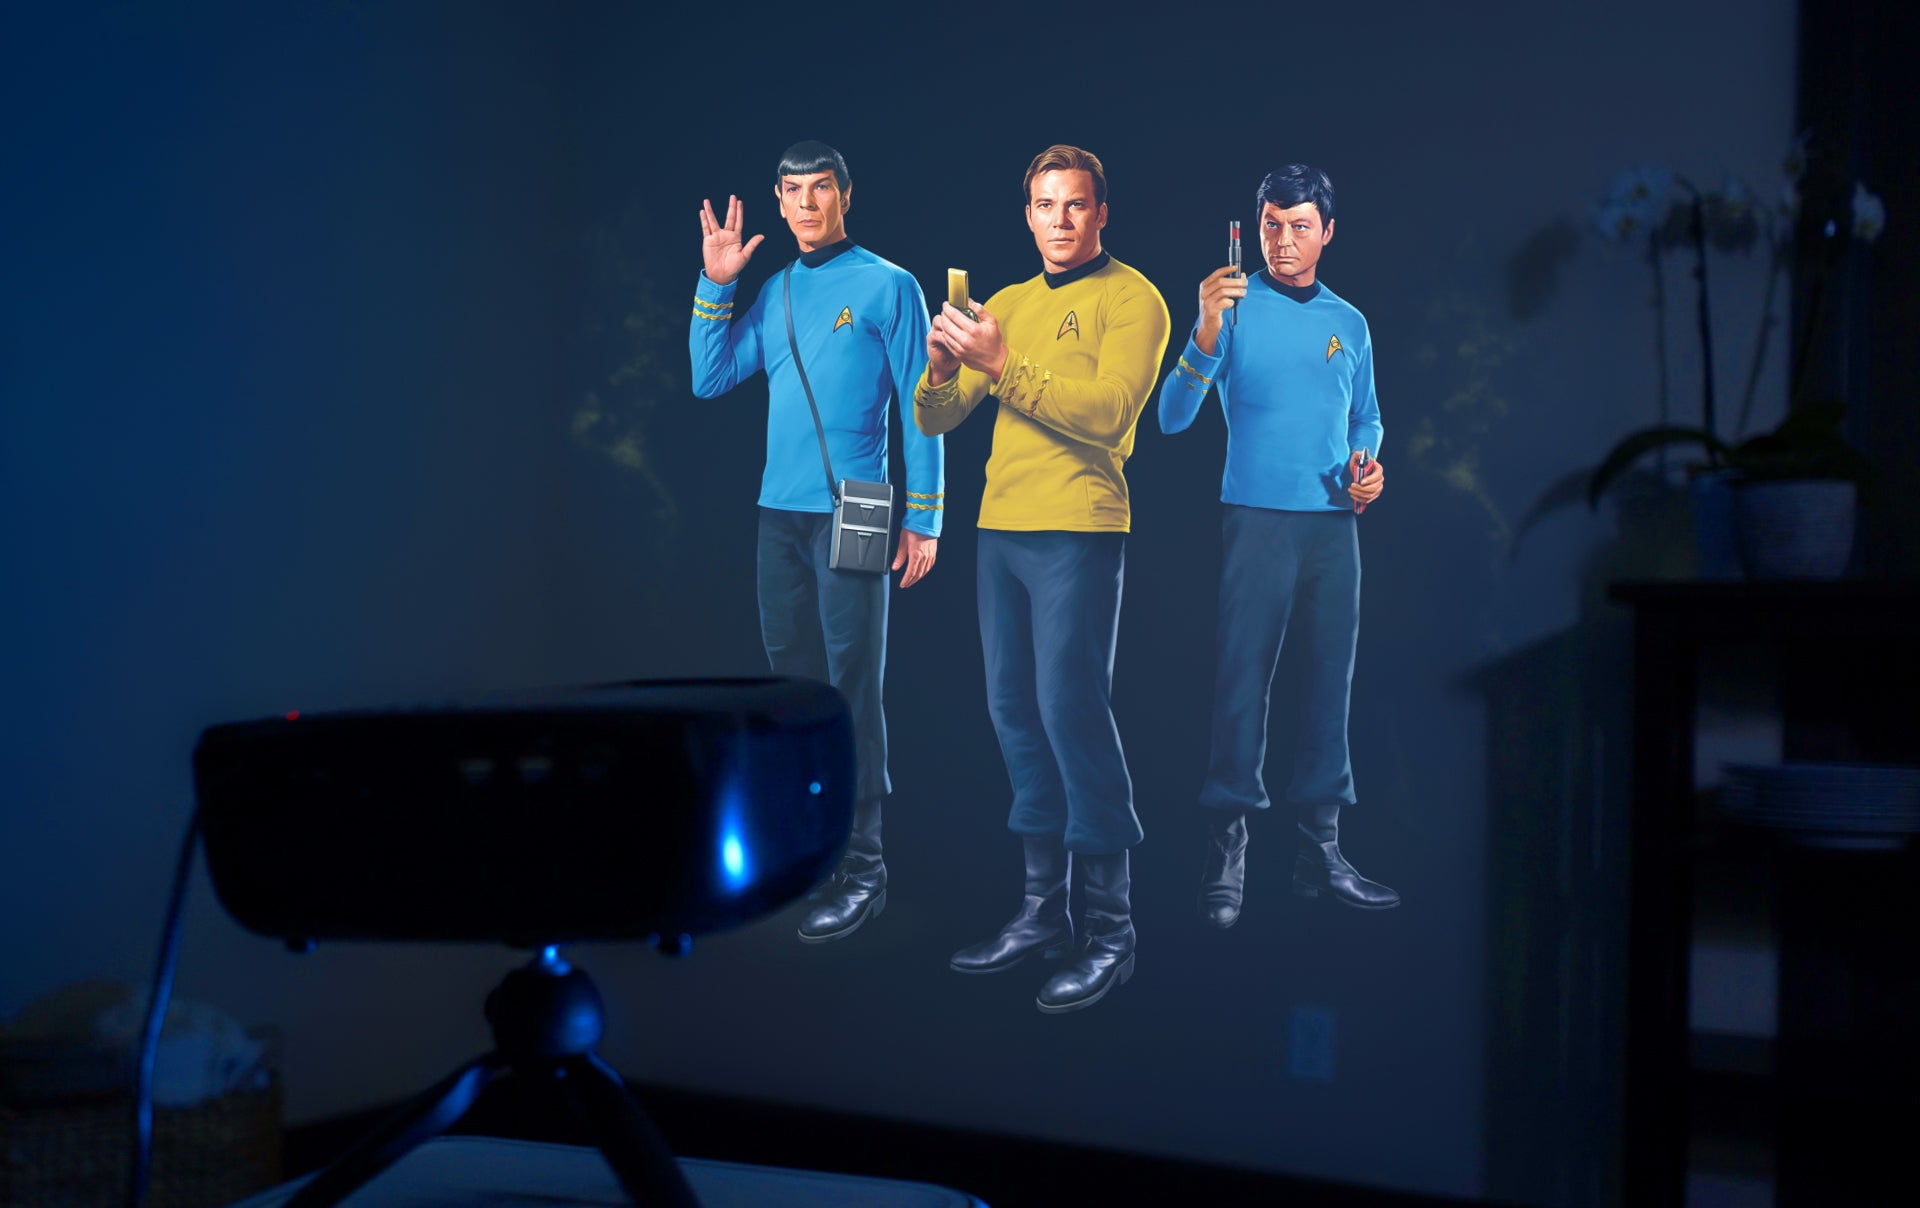 Kirk, Bones, and Spock are on an away mission to your living room wall